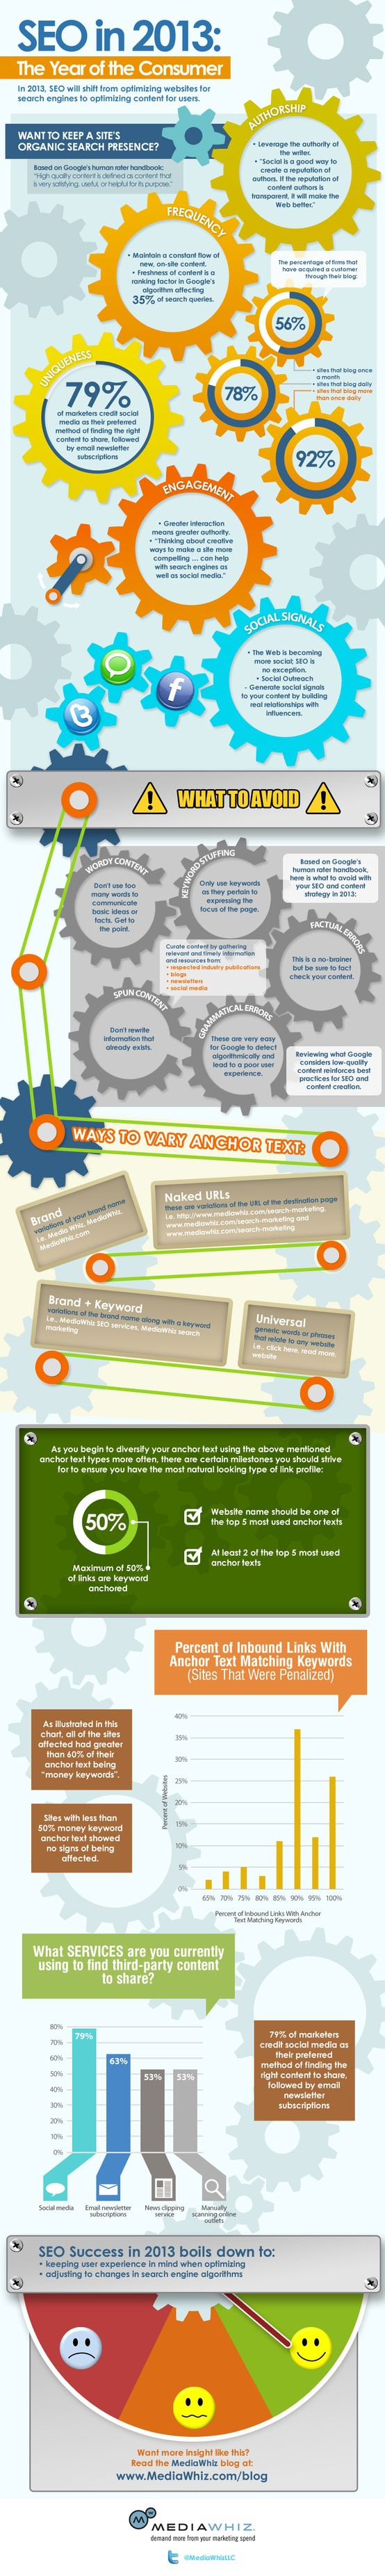 #SEO in 2013 - Optimizes #Content for Users [#Infographic]